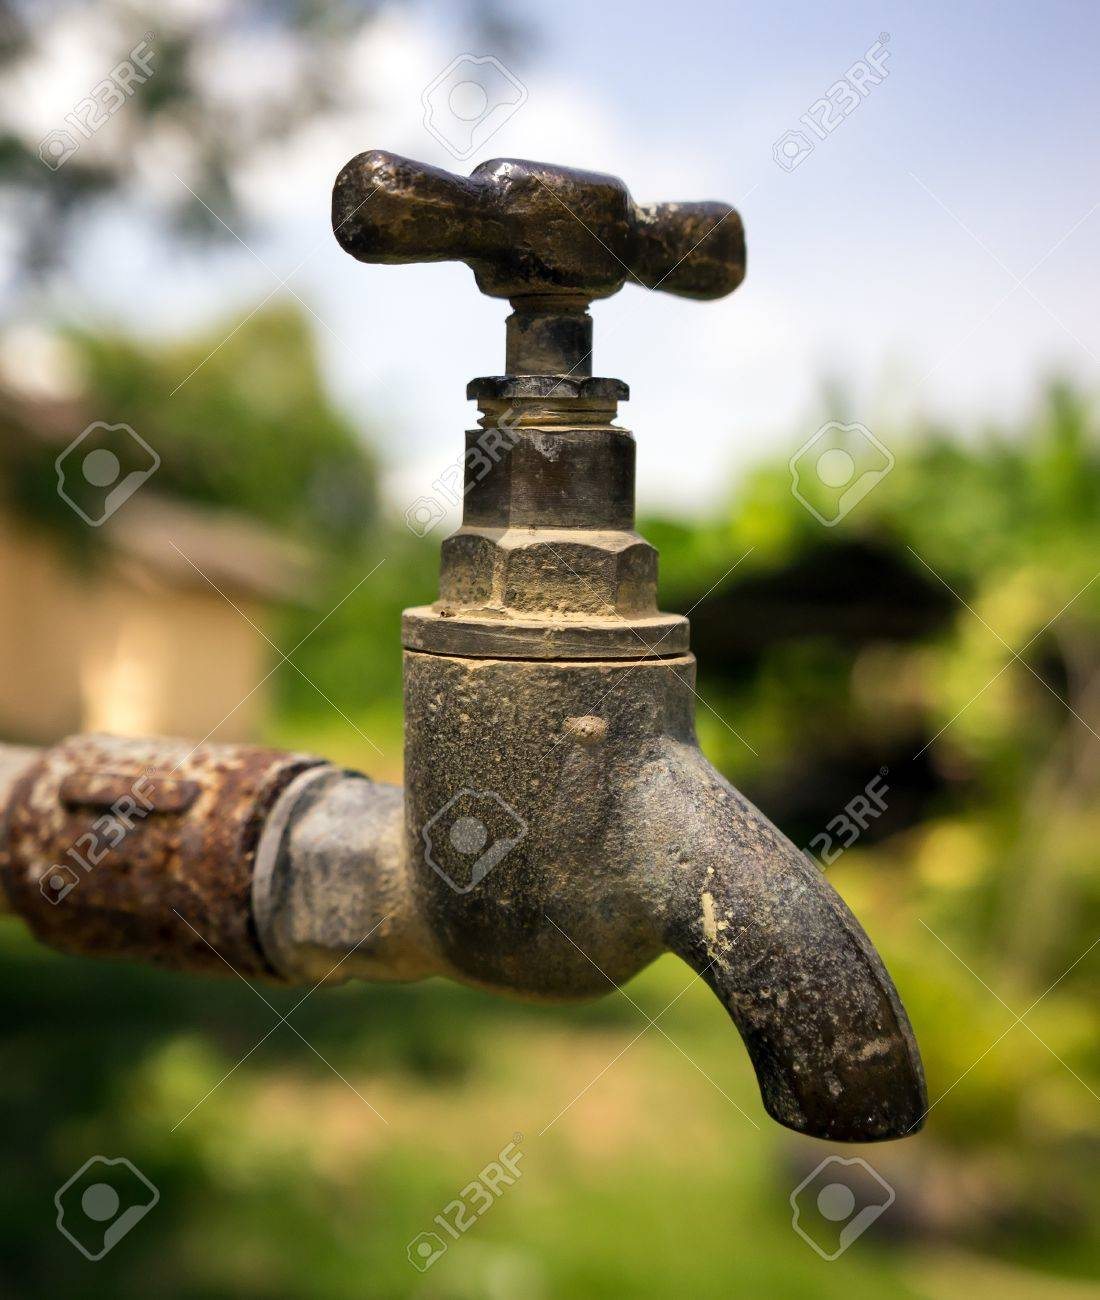 Old Rusty Water Taps Stock Photo, Picture And Royalty Free Image ...